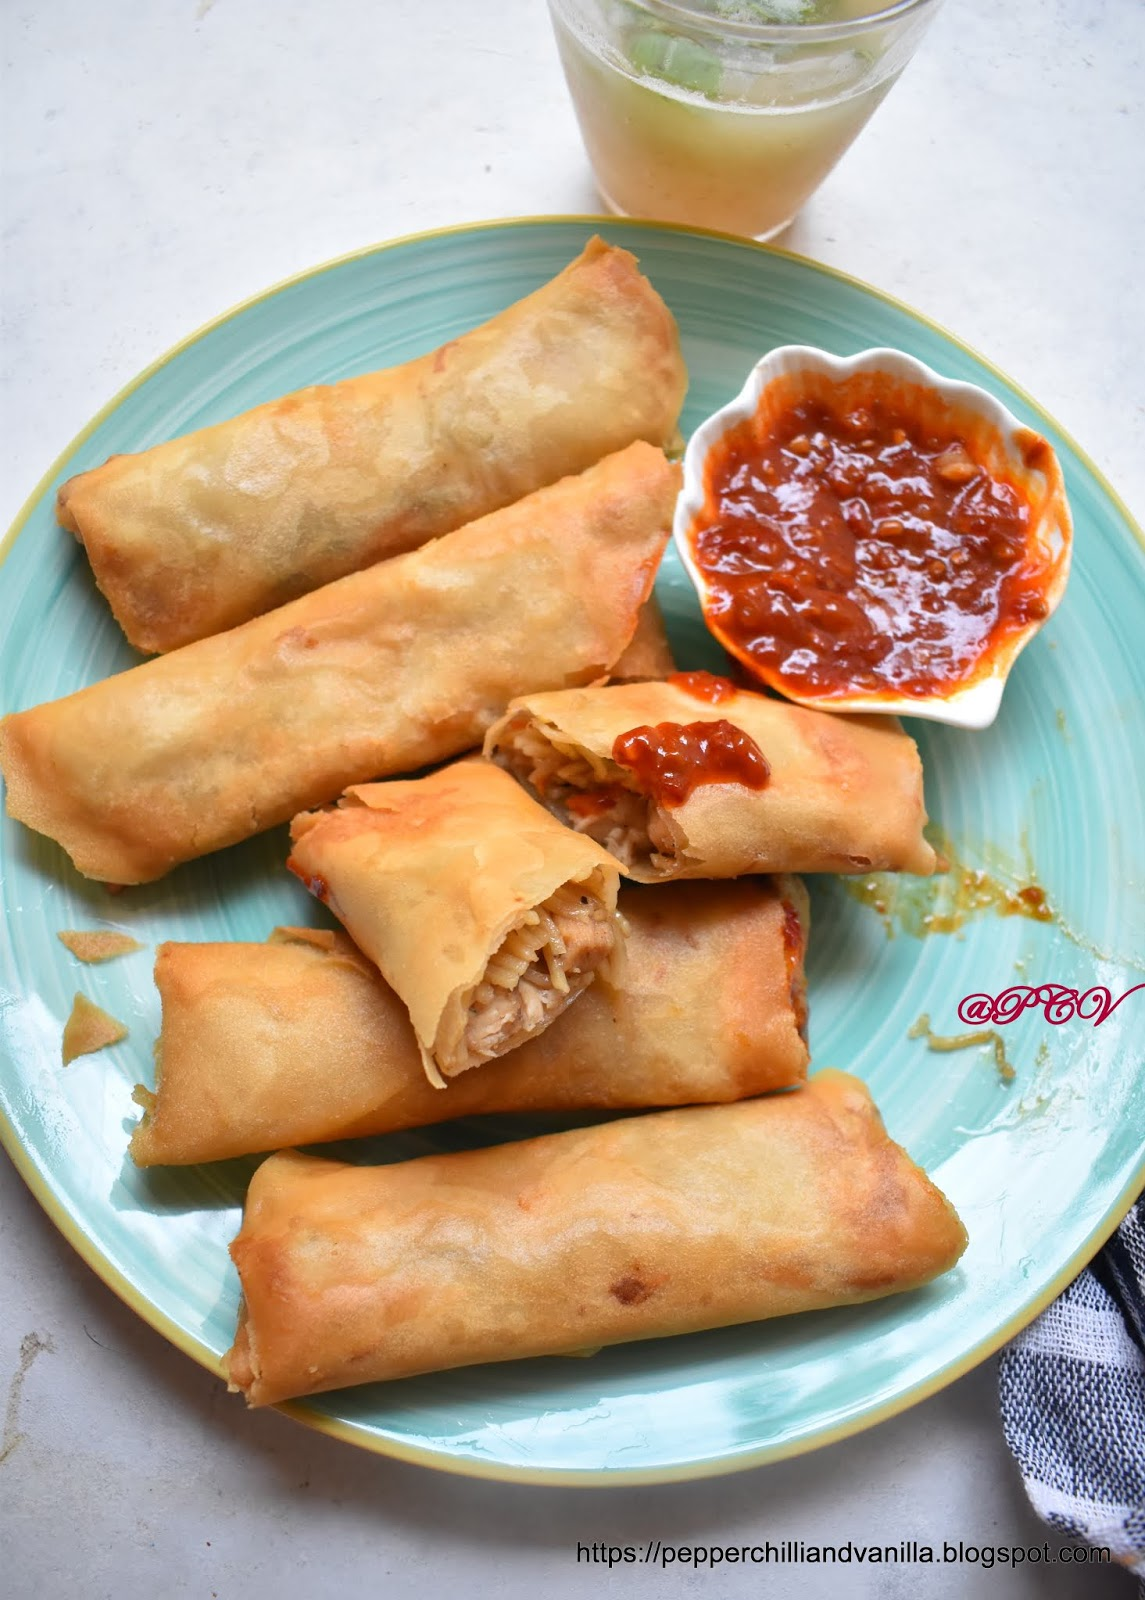 Spring rolls recipe ,chicken spring rolls recipe,how to make spring rolls, easy spring rolls recipe, indo Chinese spring rolls, crispy spring rolls recipe, how to make chicken noodle spring rolls